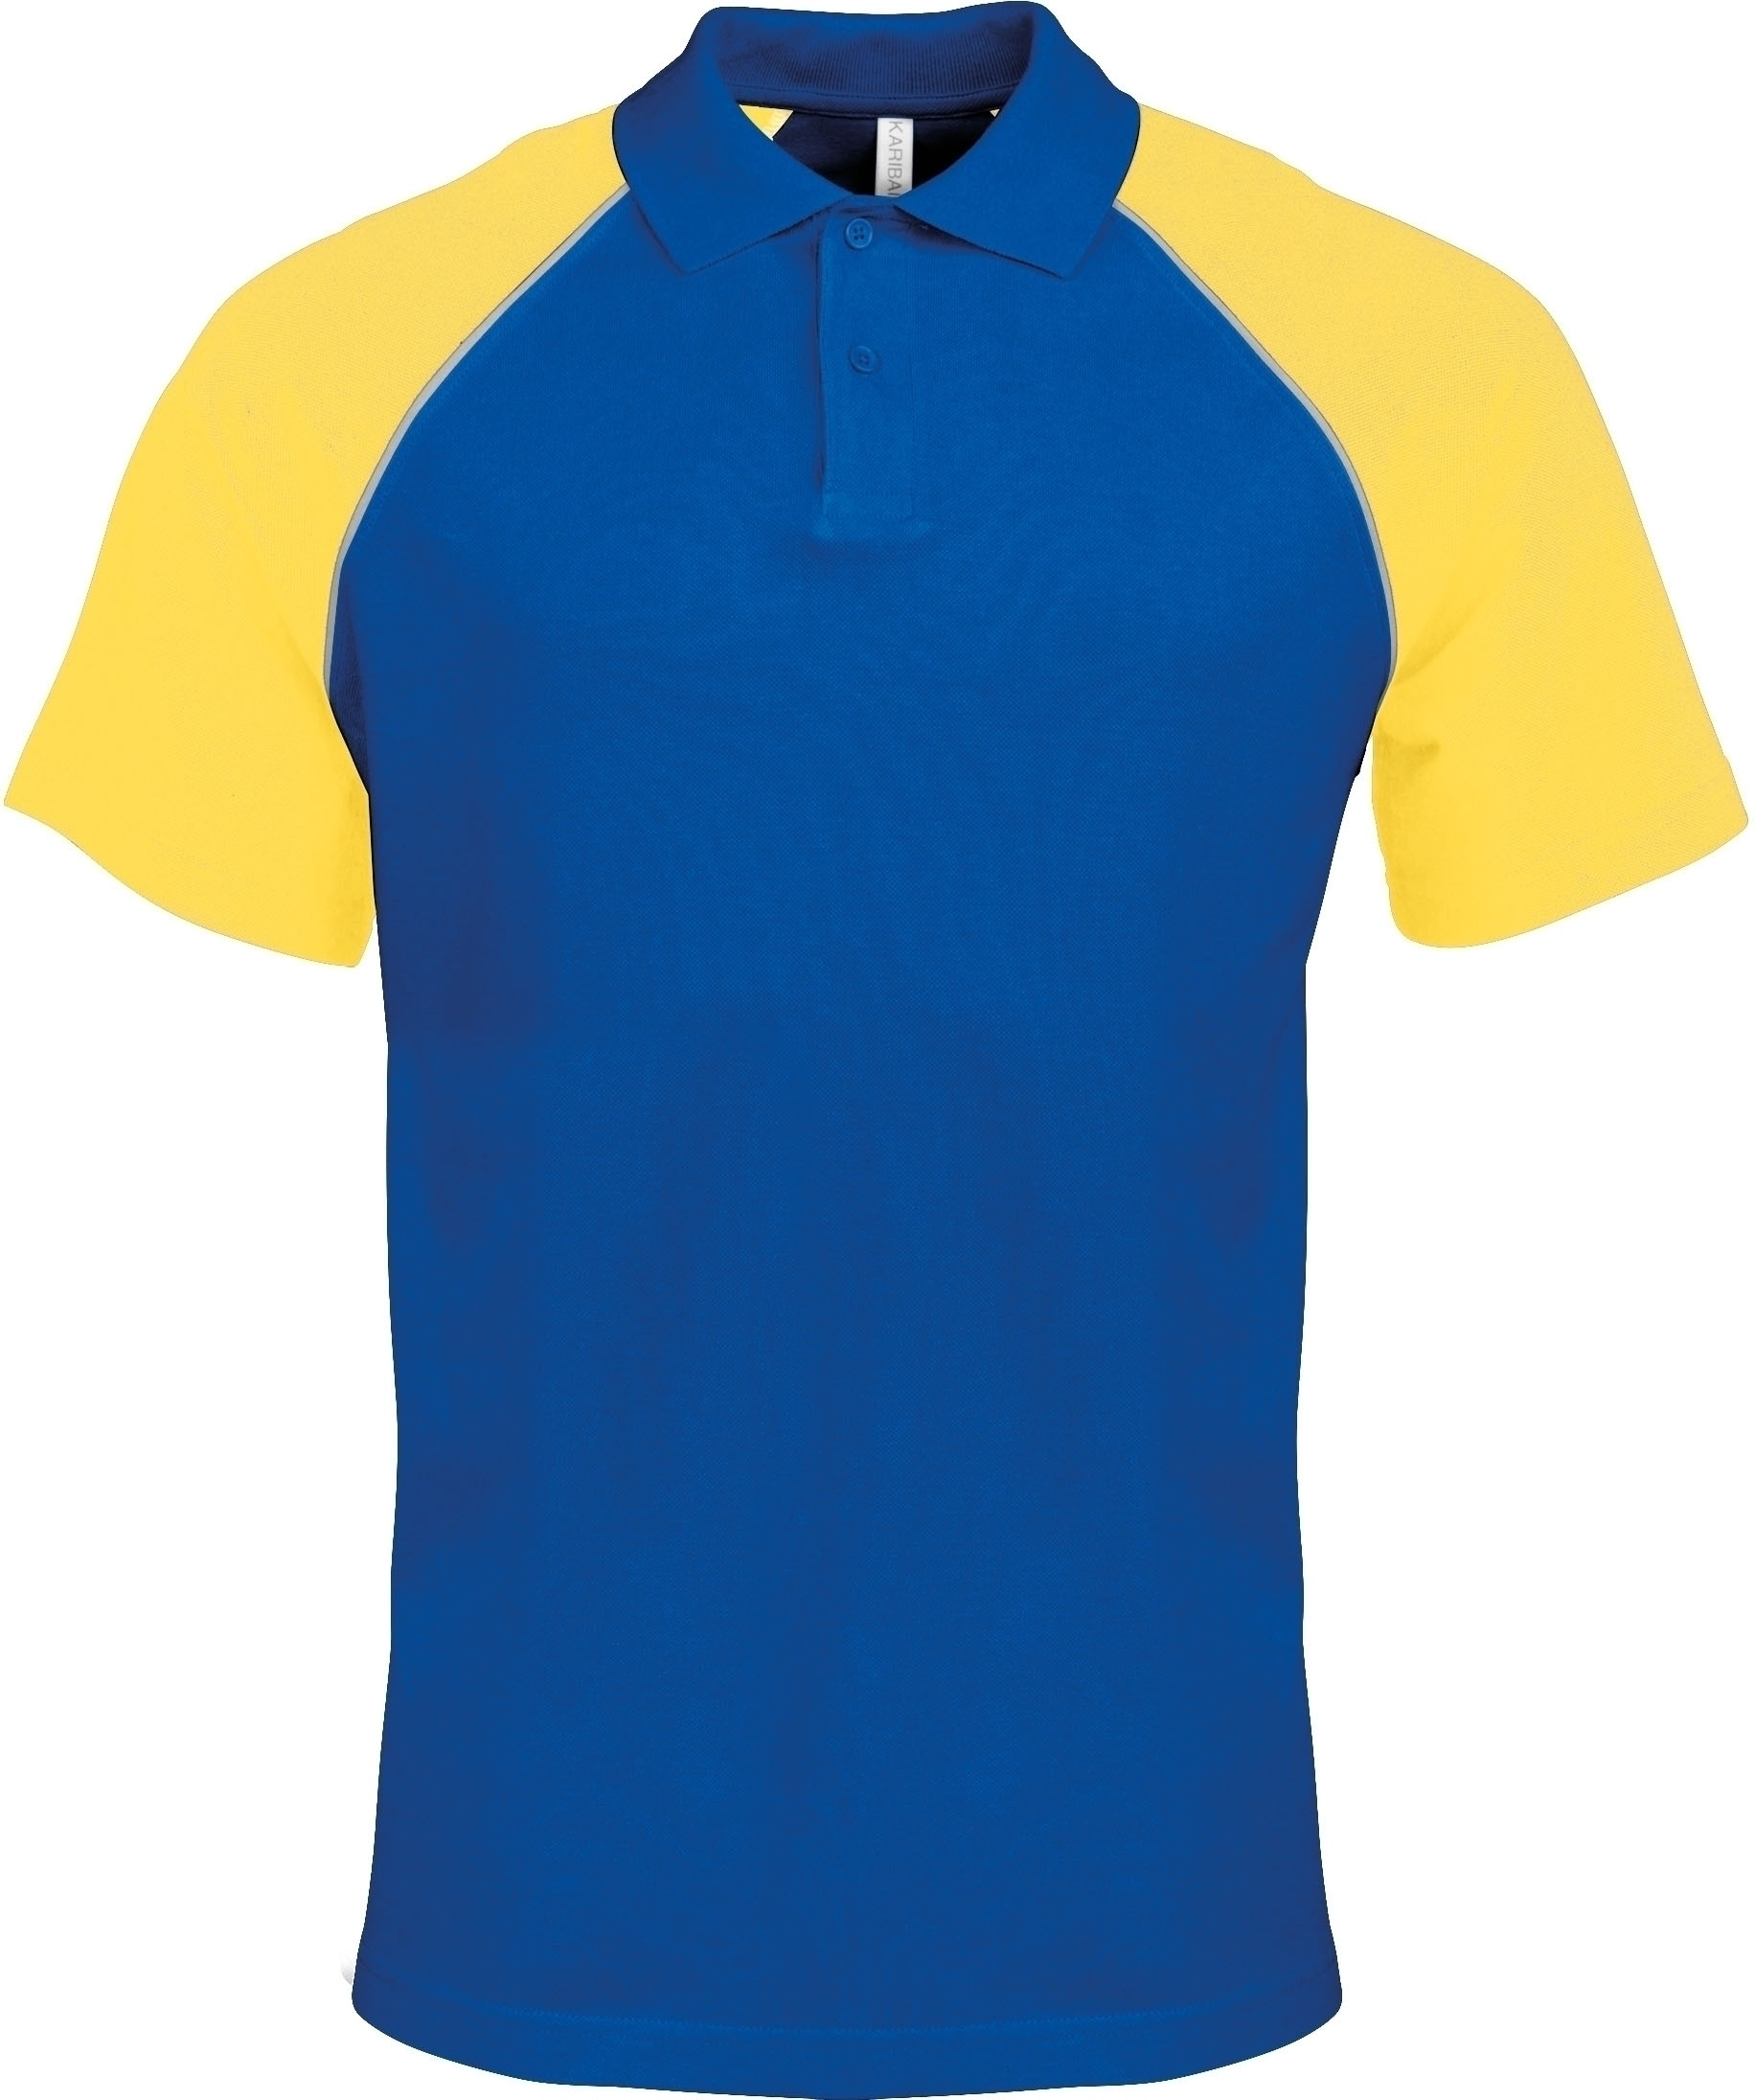 POLO BASE BALL MANCHES COURTES Royal Blue / Yellow Bleu